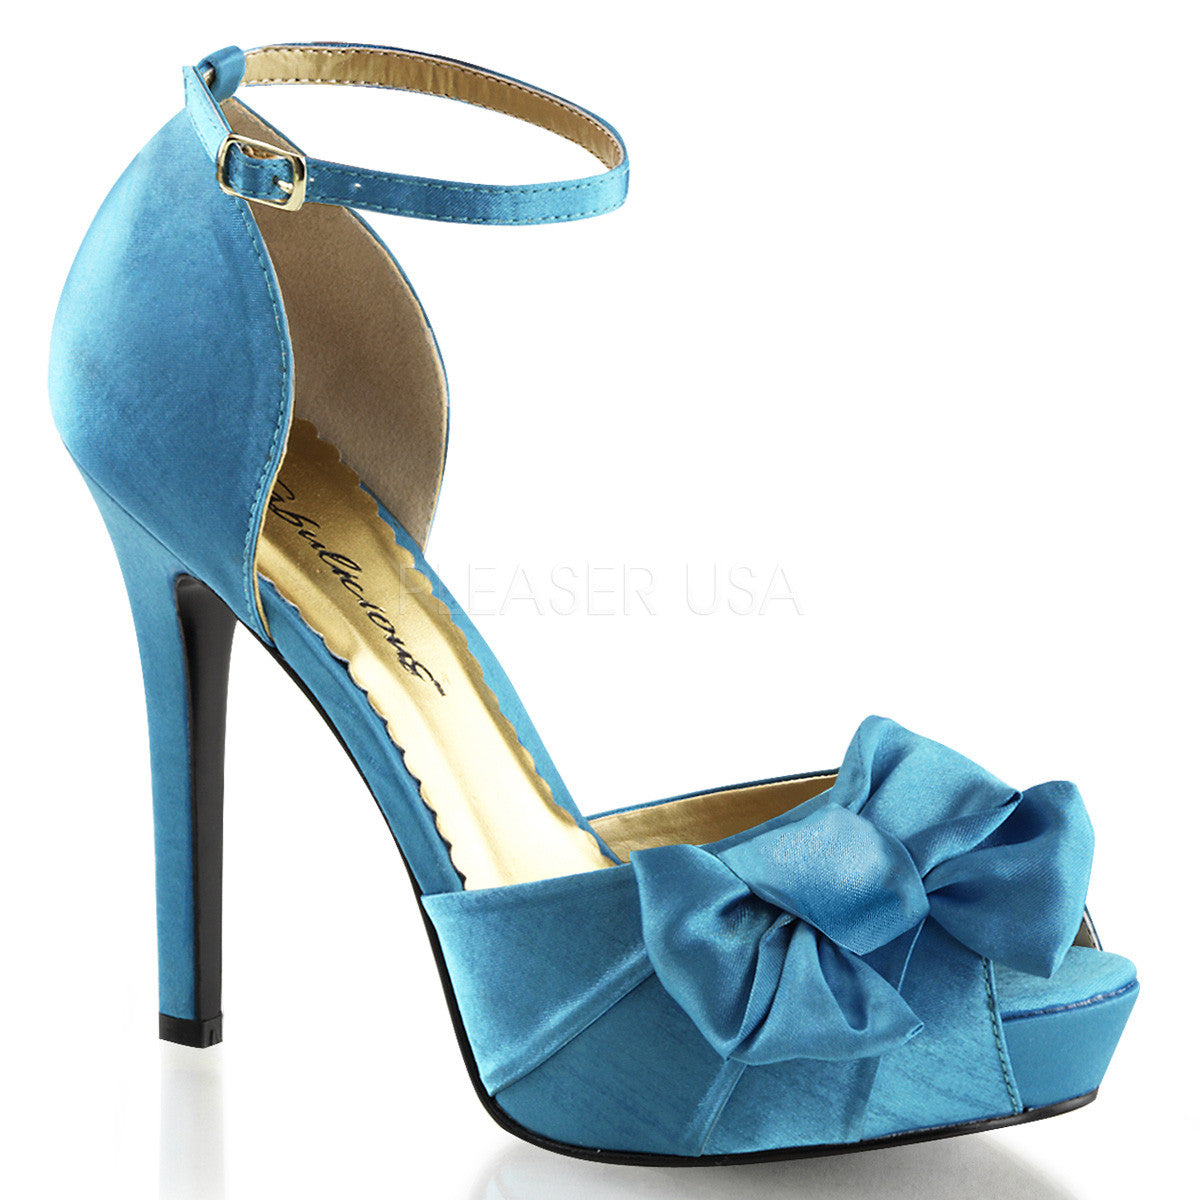 FABULICIOUS LUMINA-36 Blue Satin Peep Toe Pumps - Shoecup.com